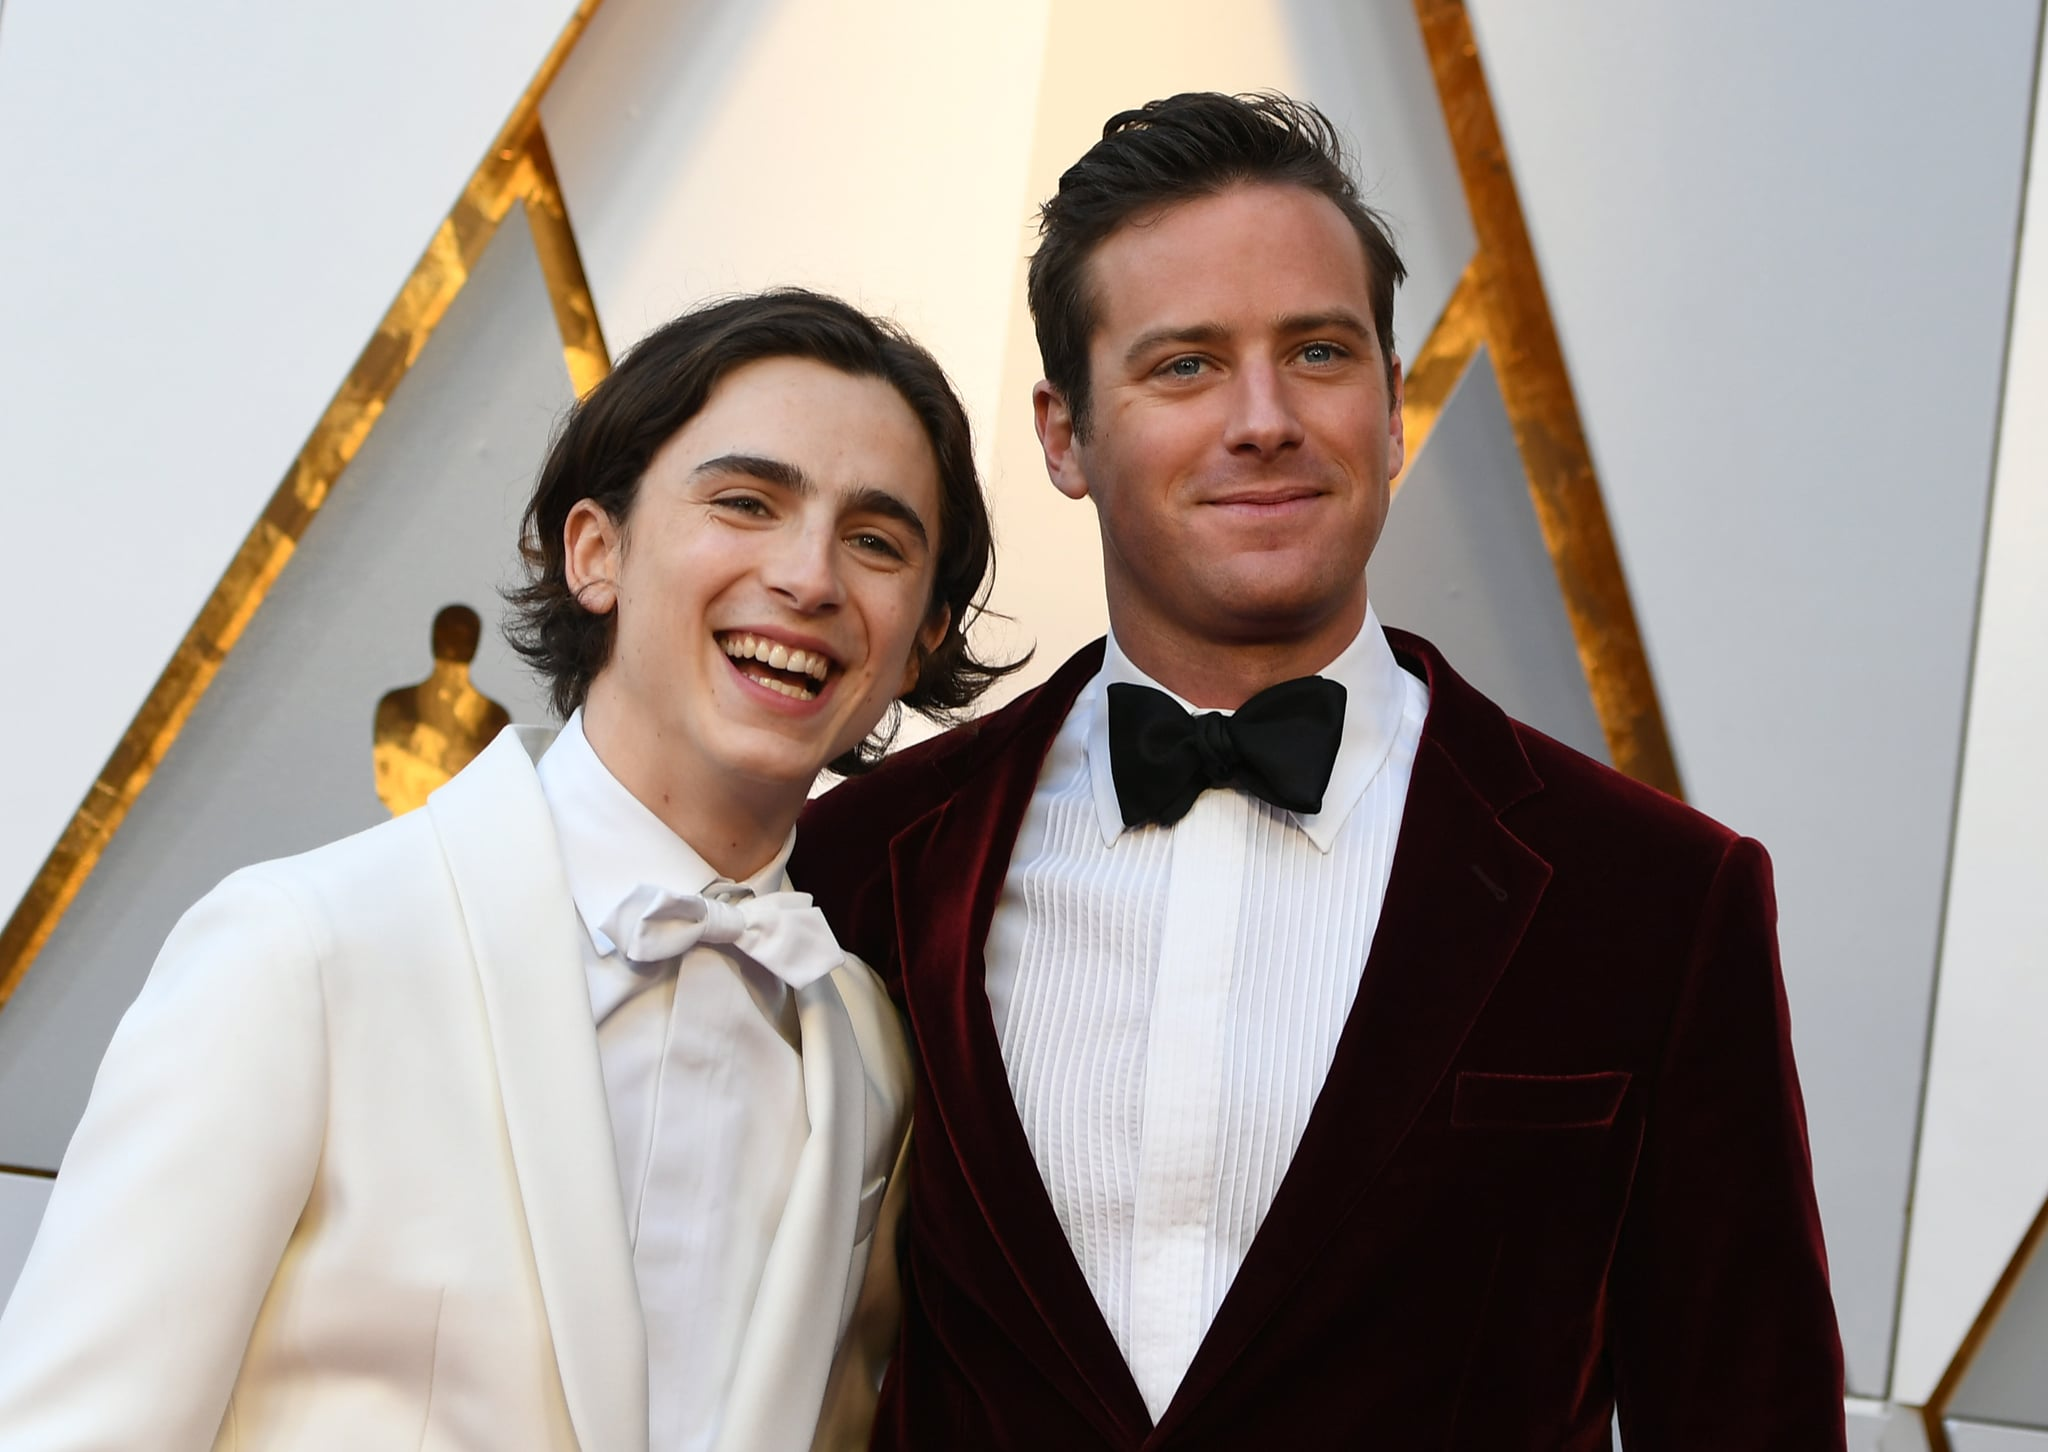 Actor Timothée Chalamet, left, and Actor Armie Hammer arrive for the 90th Annual Academy Awards on March 4, 2018, in Hollywood, California.  / AFP PHOTO / VALERIE MACON        (Photo credit should read VALERIE MACON/AFP/Getty Images)